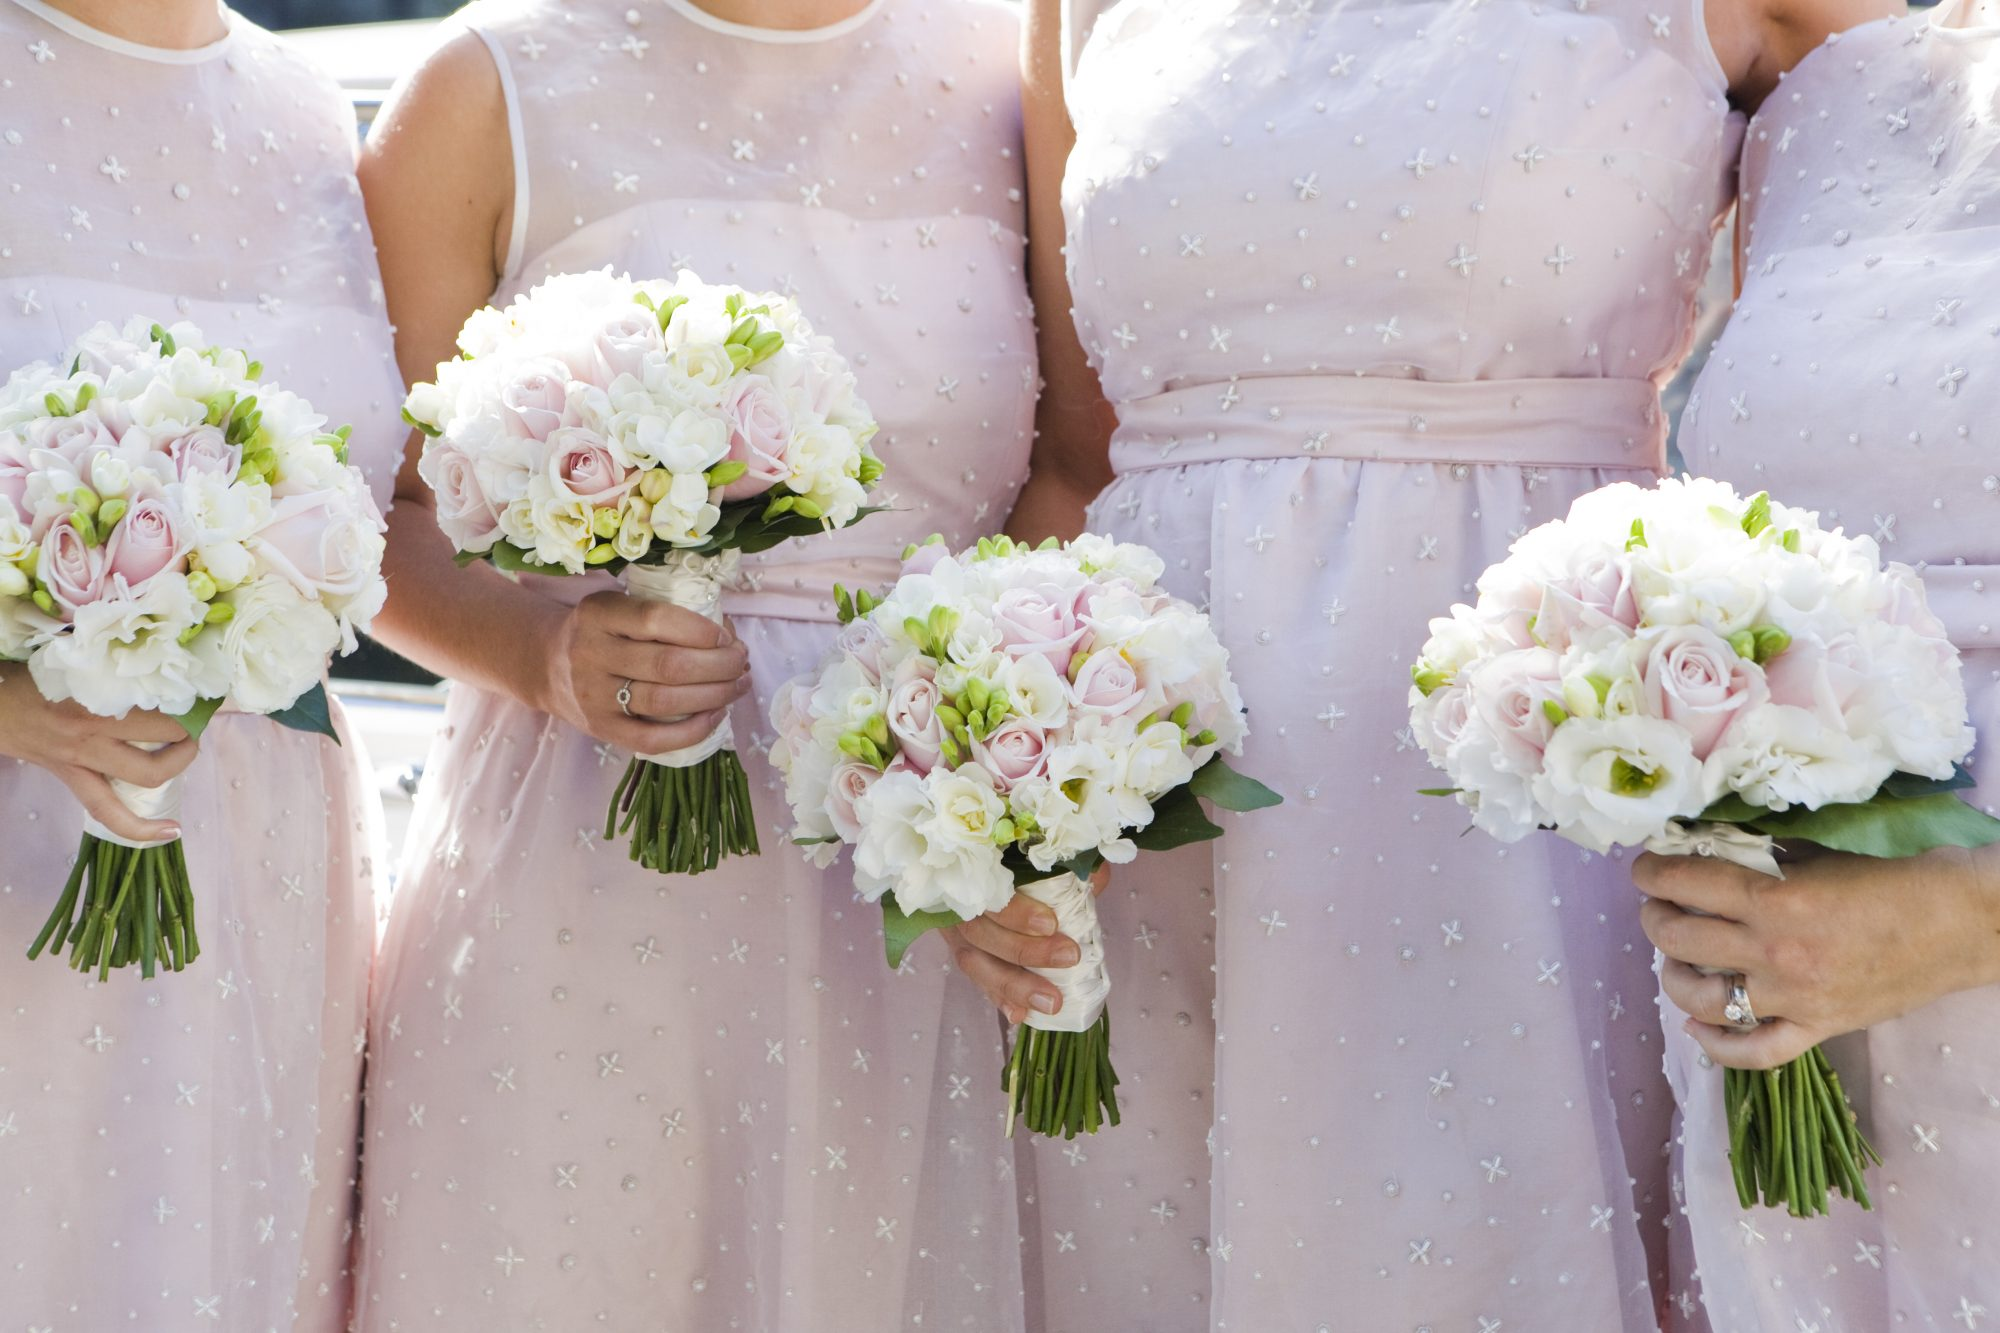 Bridesmaids in pink dresses holding bouquets